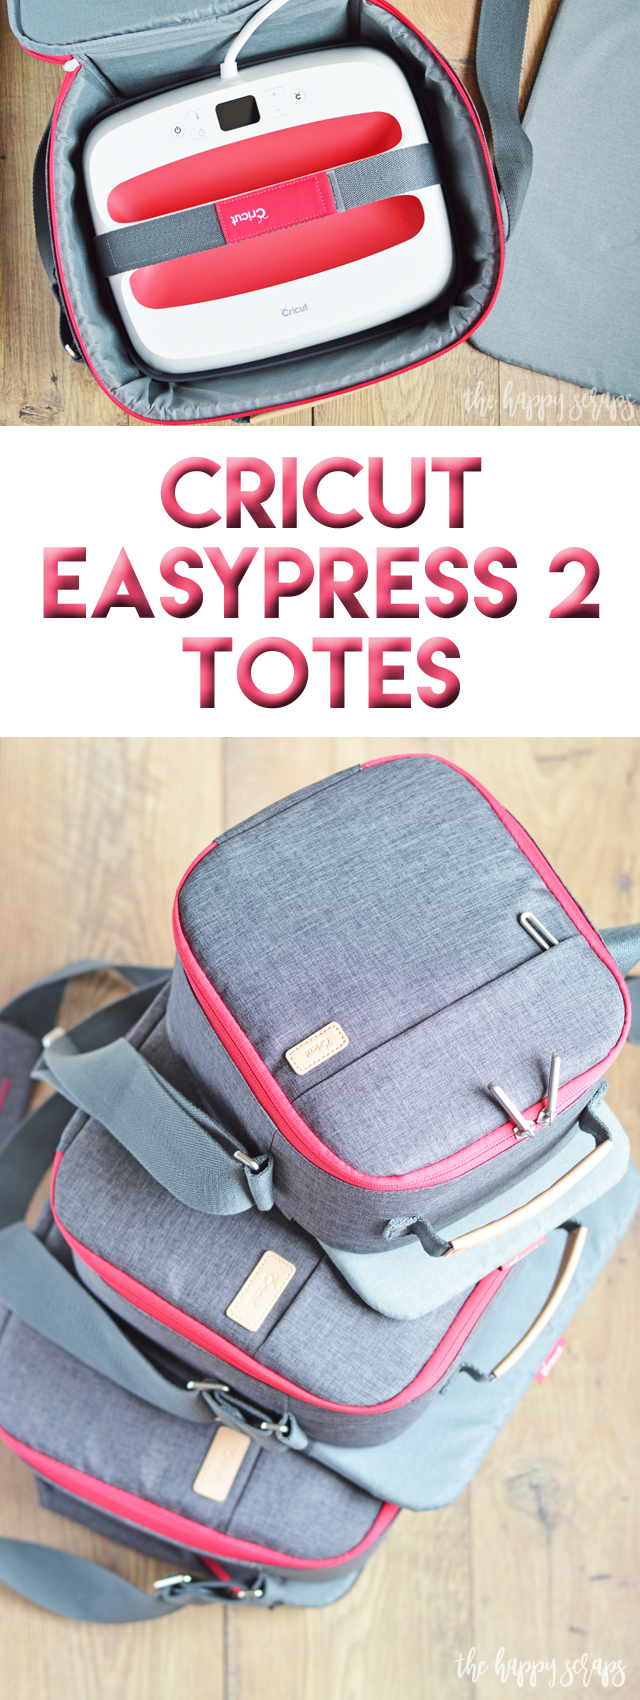 These new Cricut EasyPress 2 Totes make creating on the go simple! Load up your EasyPress 2 in these stylish totes and you'll be ready to create anywhere.